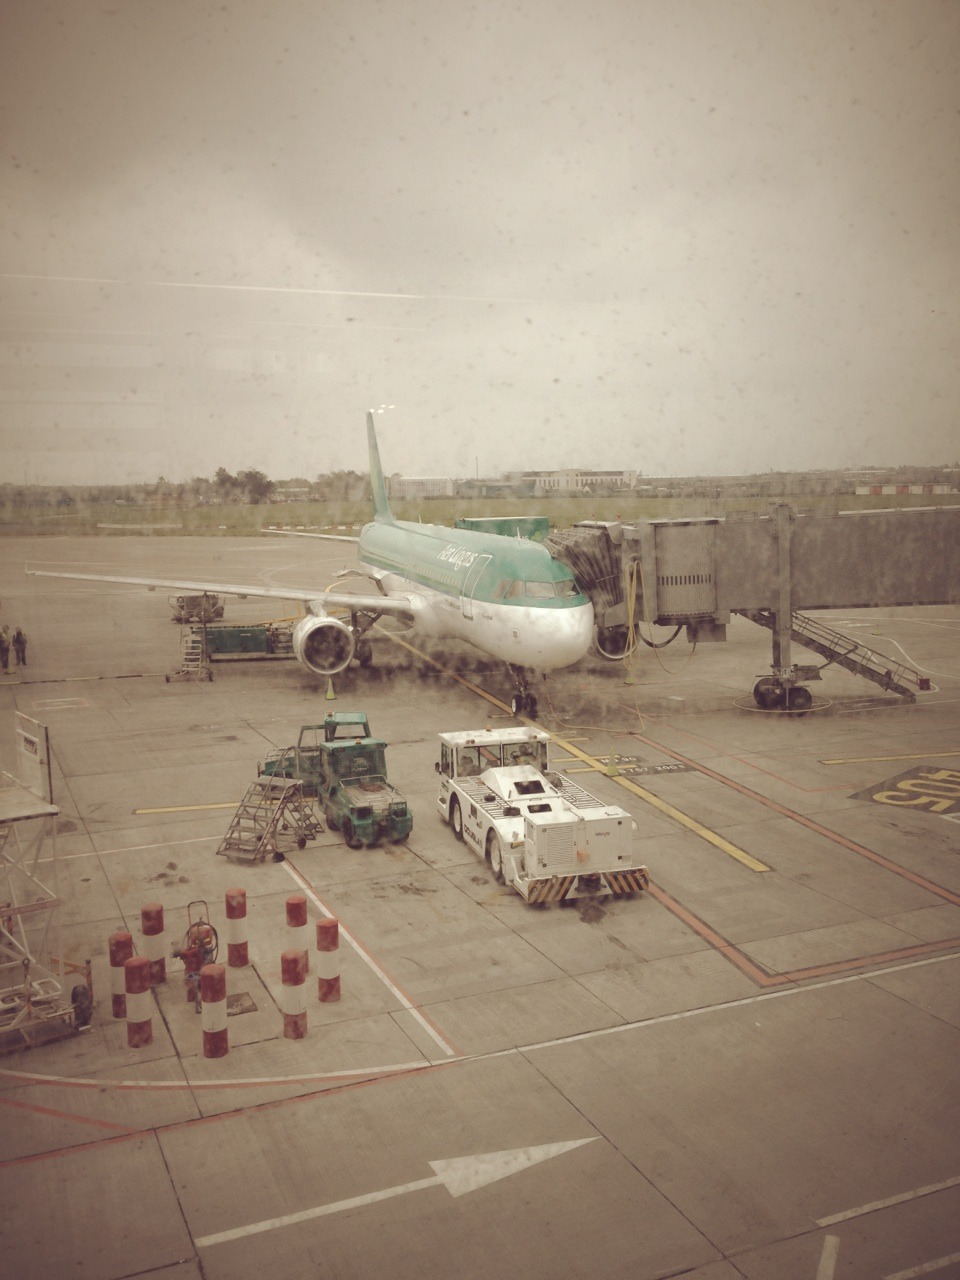 A filthy, filthy morning in Dublin… waiting for my flight back to London.